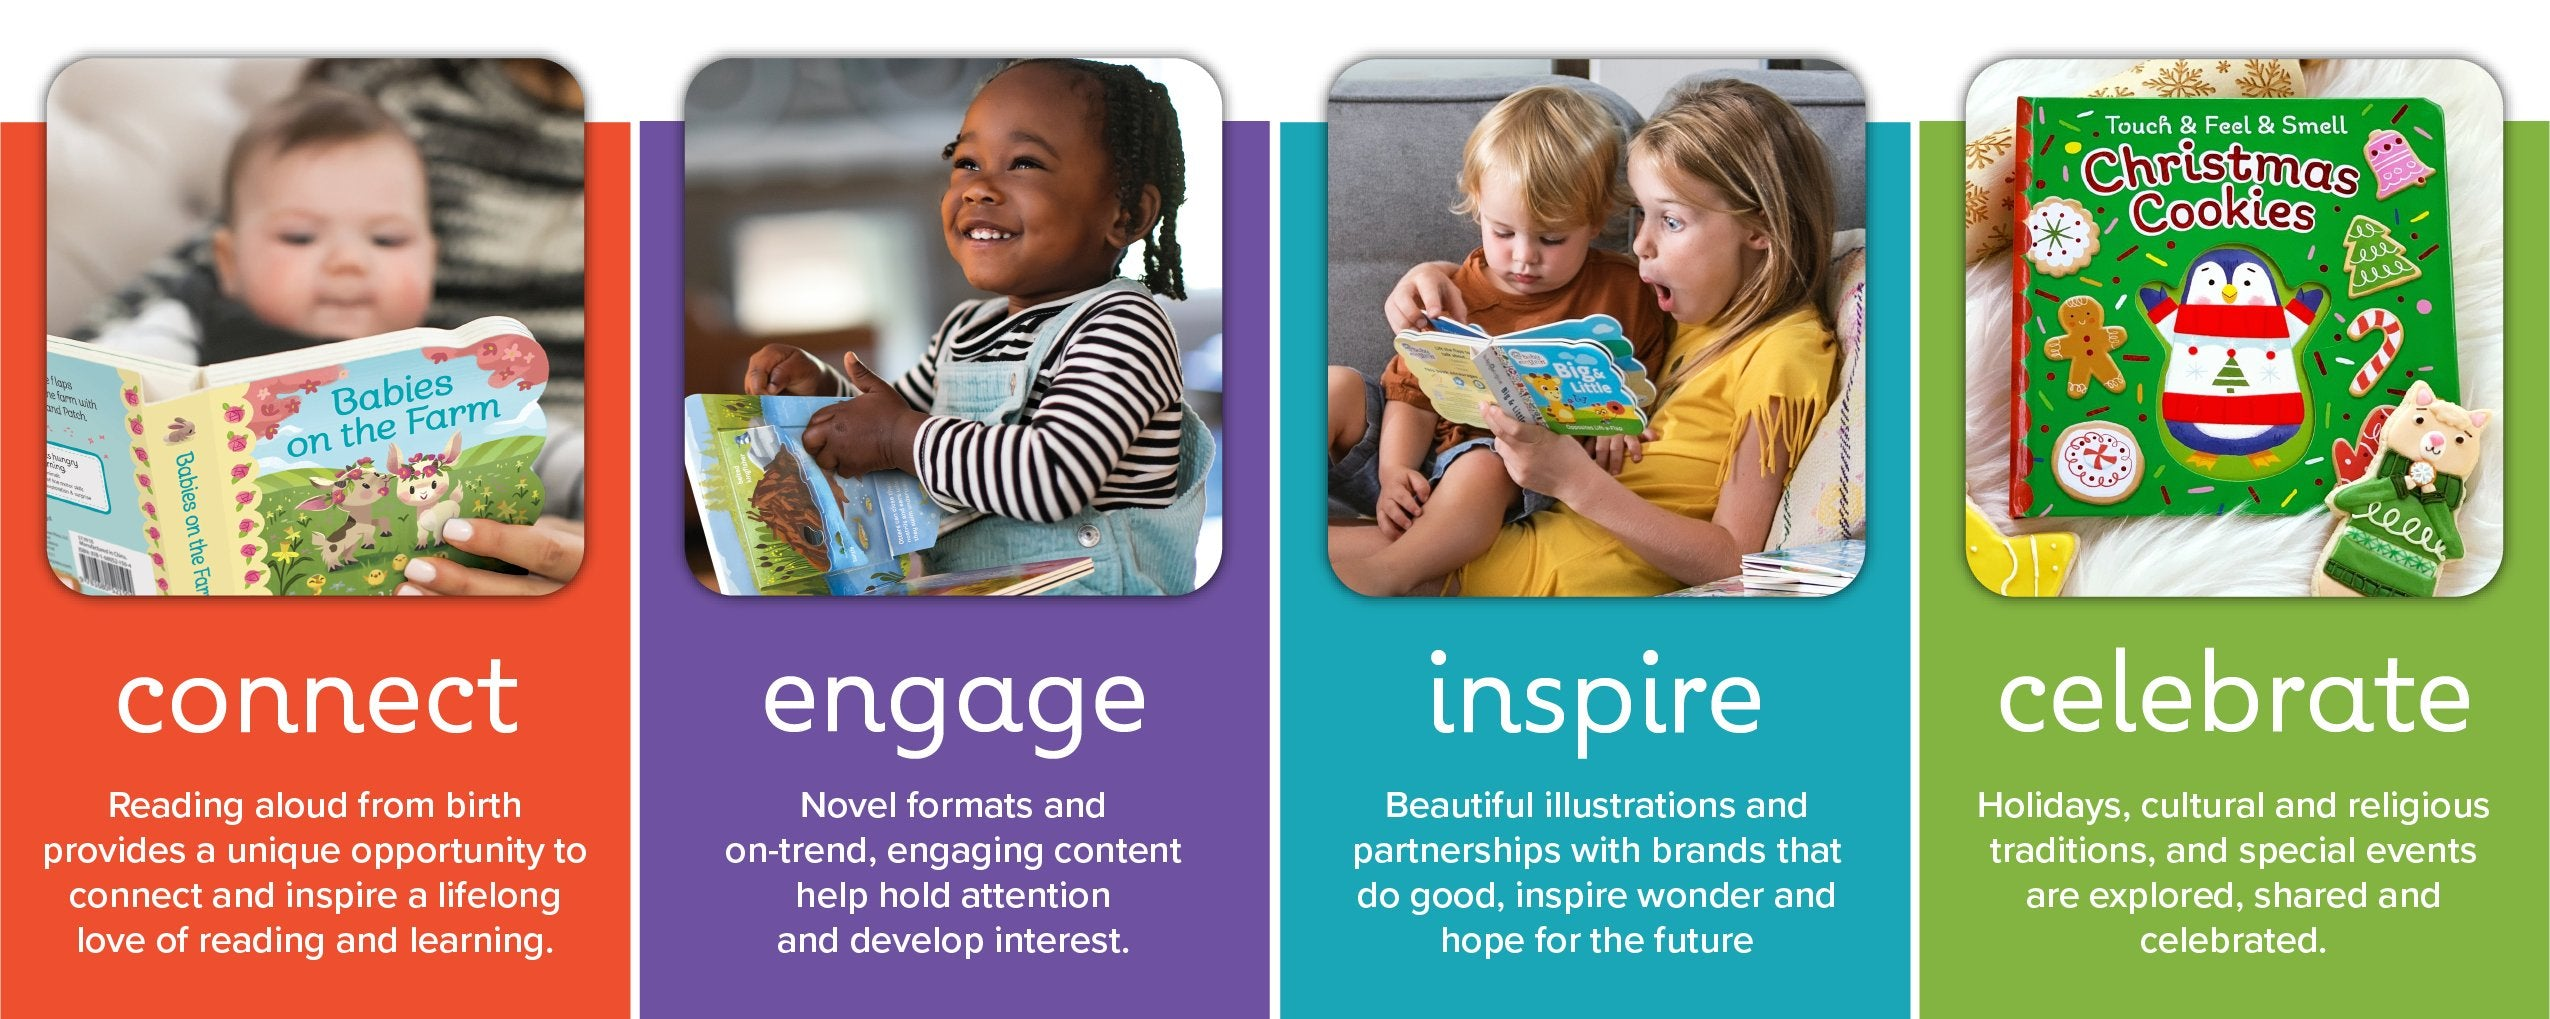 We focus on the littlest readers and give them an exceptional first book experience.